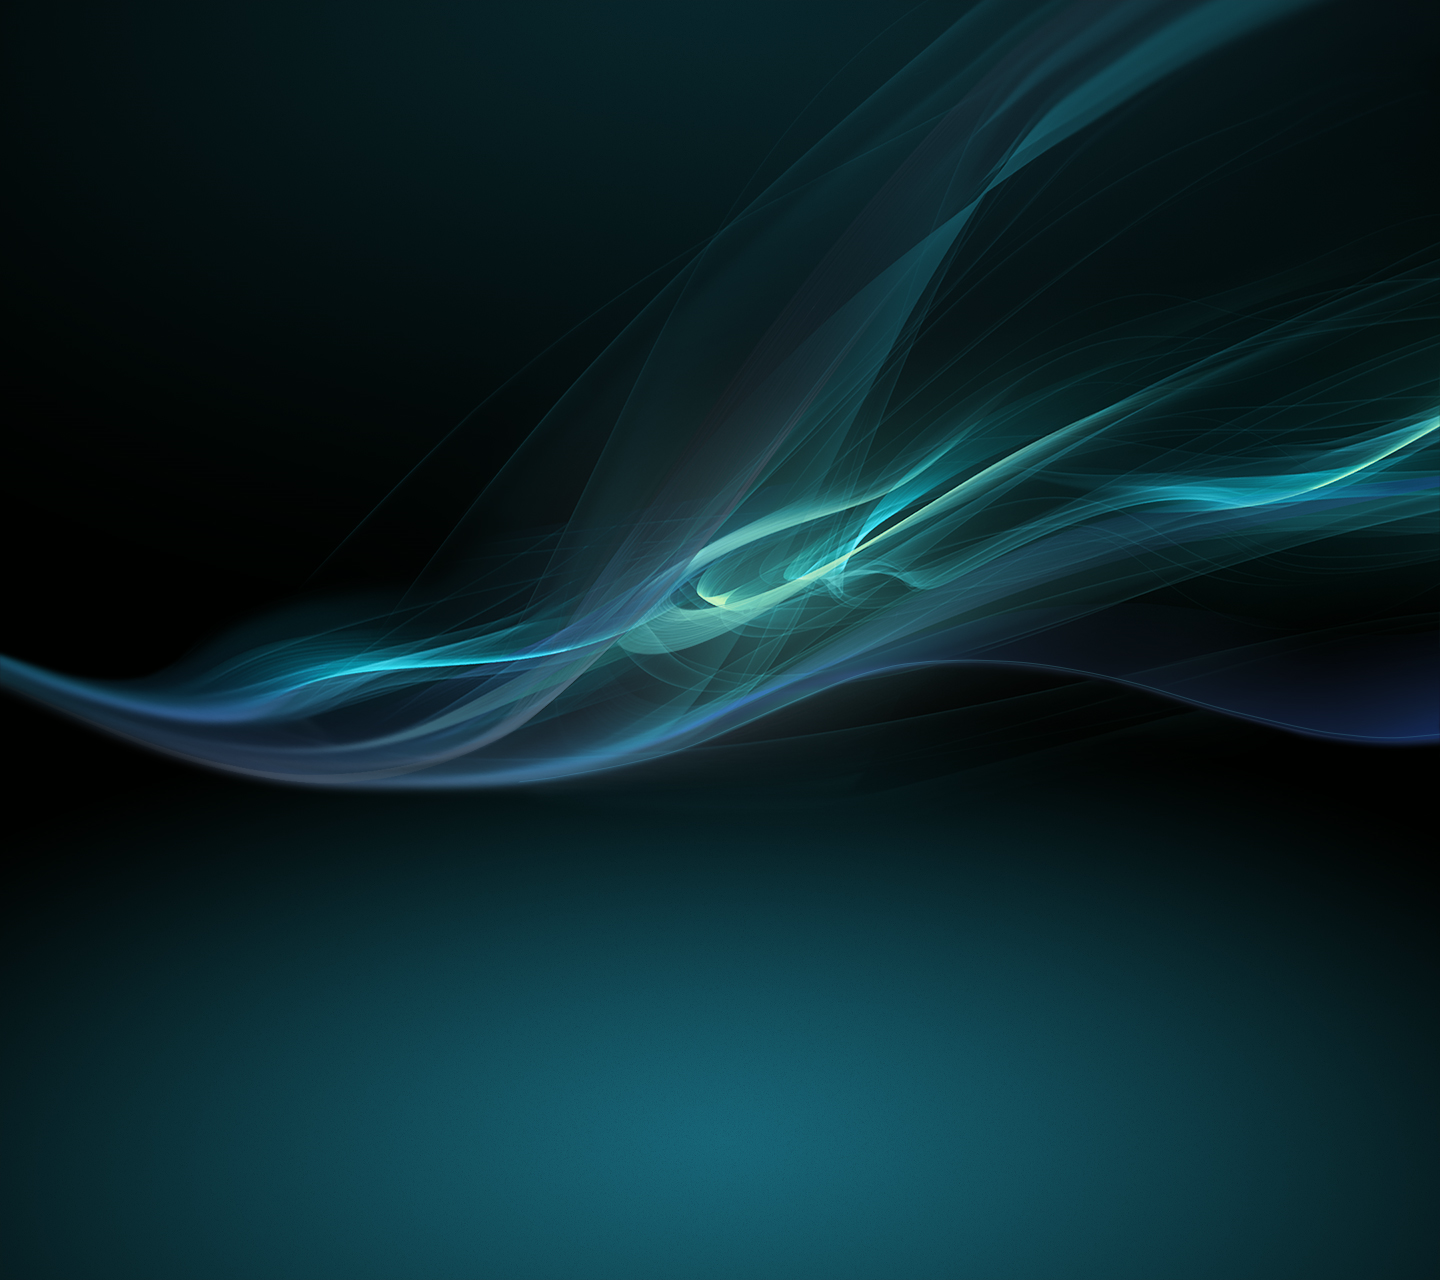 Blue Xperia Z Wallpaper